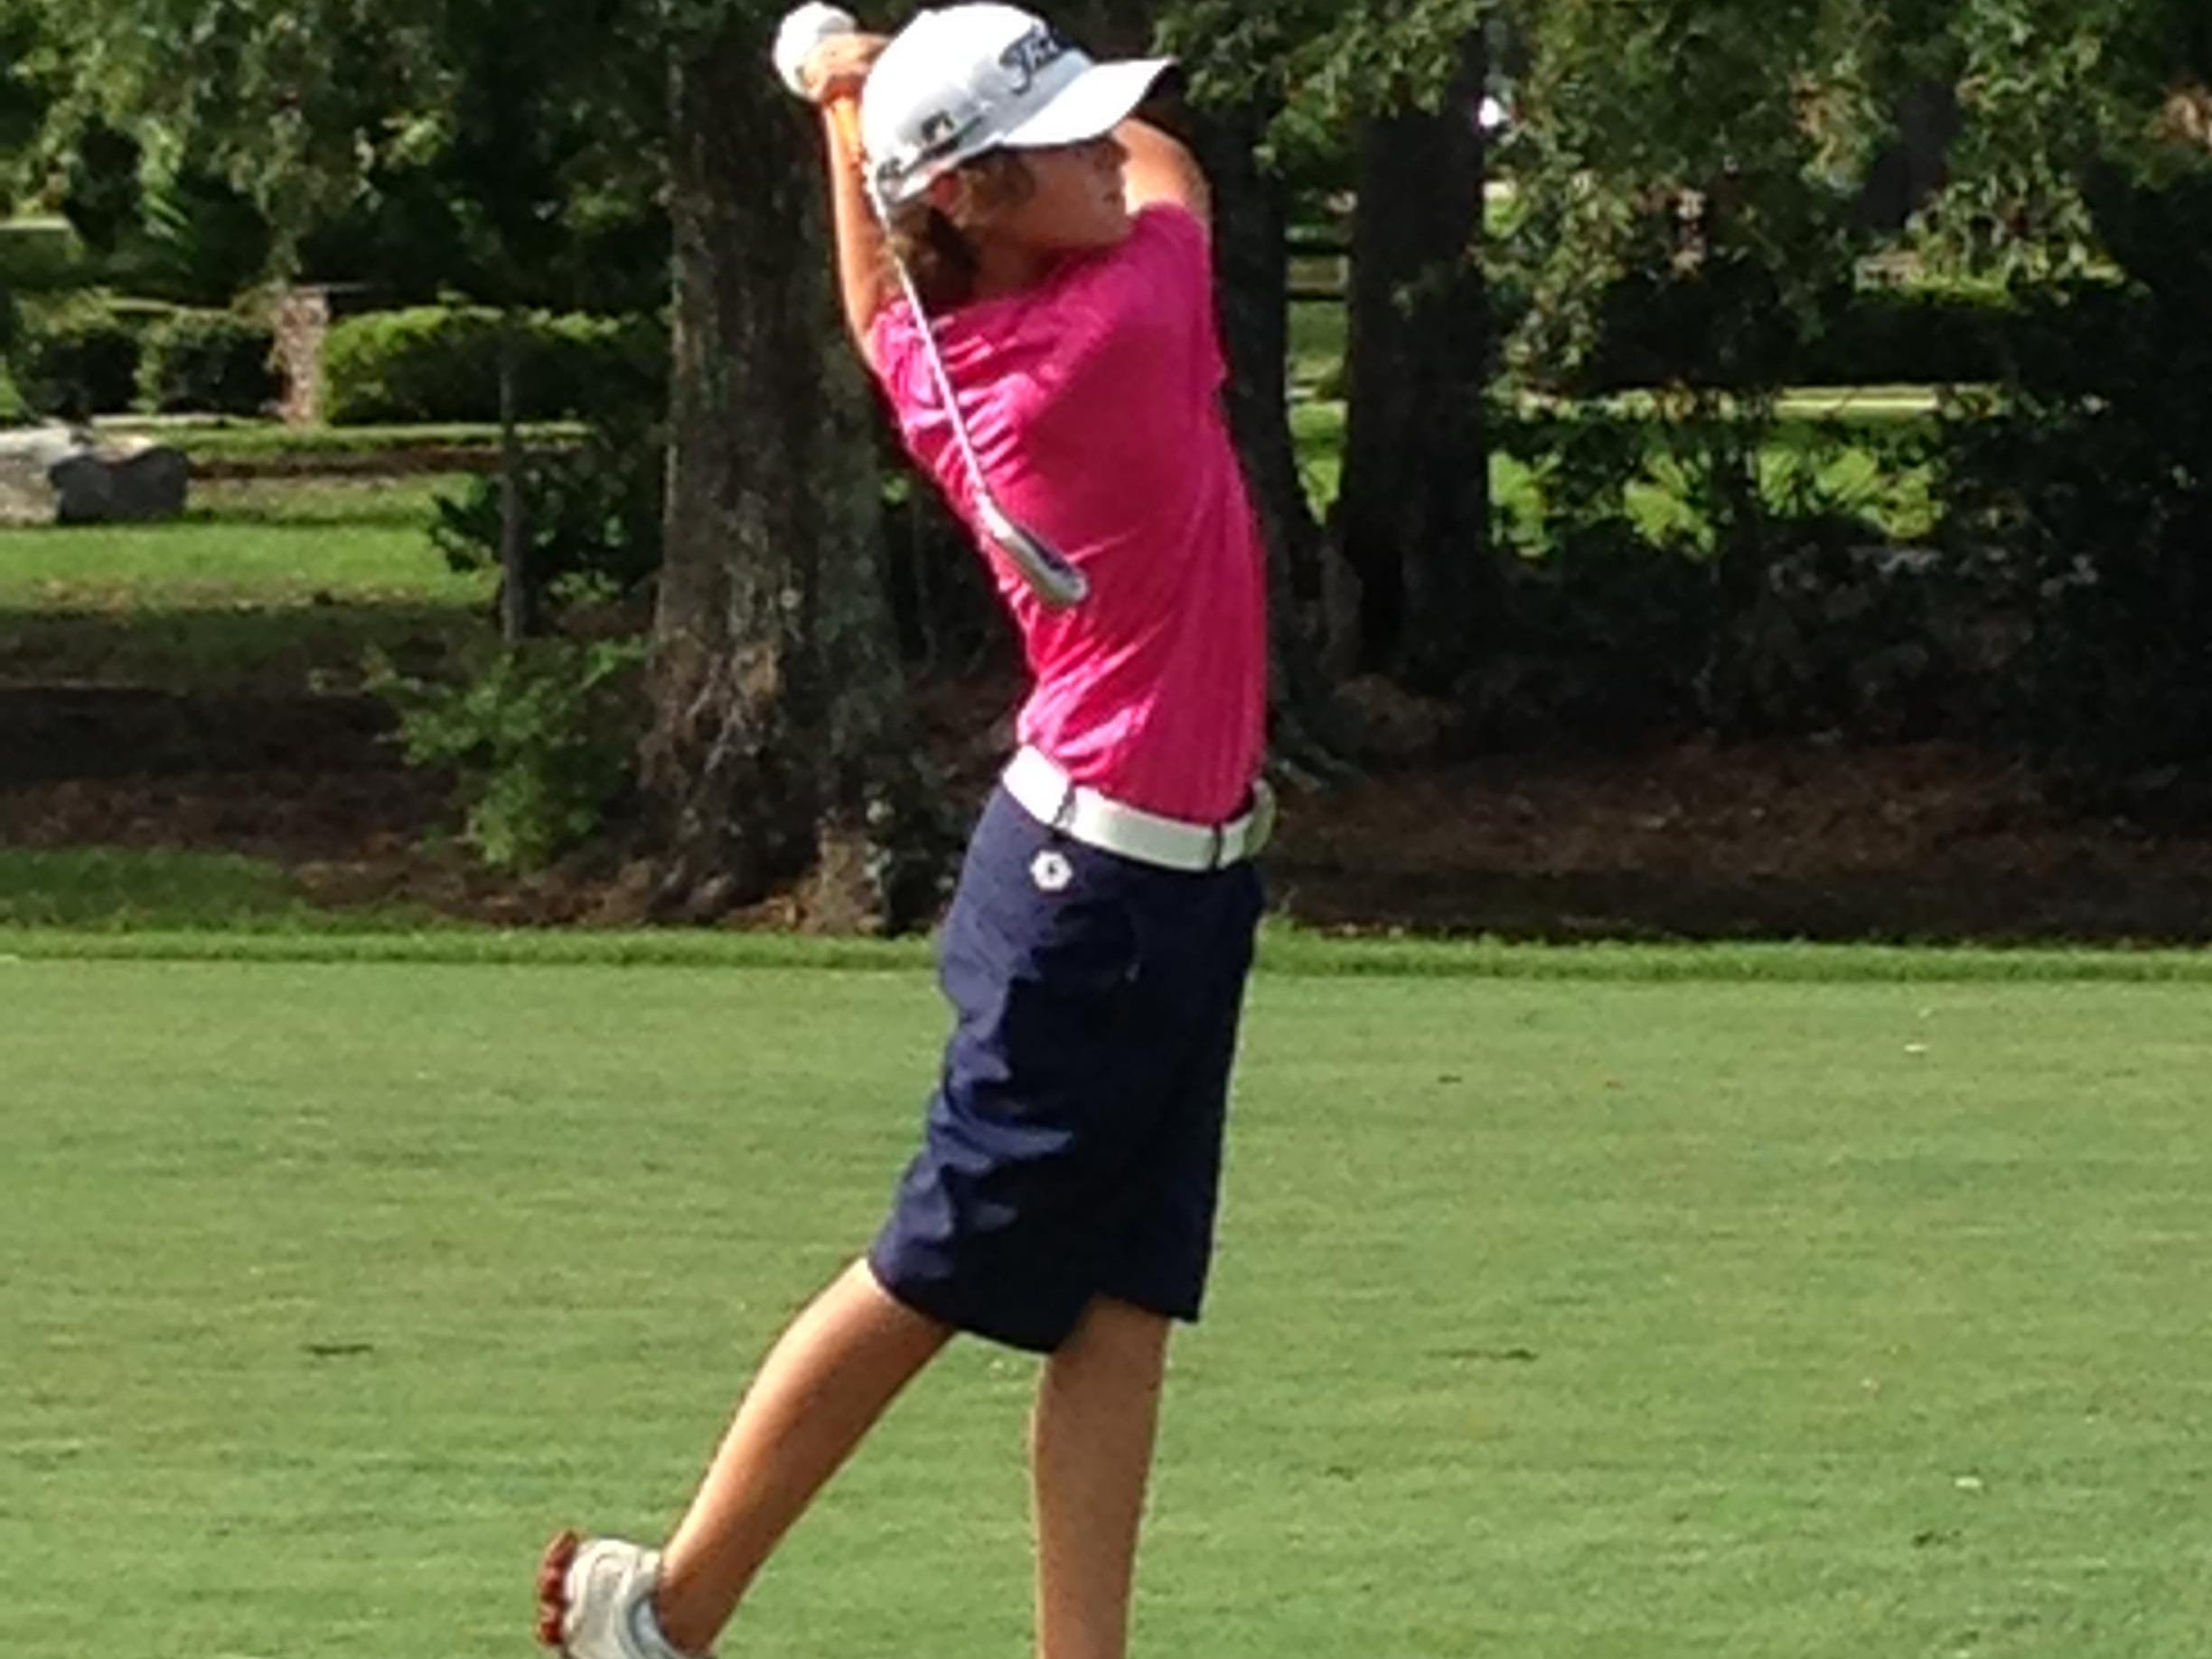 Brame Middle School eighth-grader Chance Queen, 13, finished tied for second in the 13- to 14-year-old age group at the Louisiana Junior Amateur Championship, shooting a 3-over 75 on Thursday.